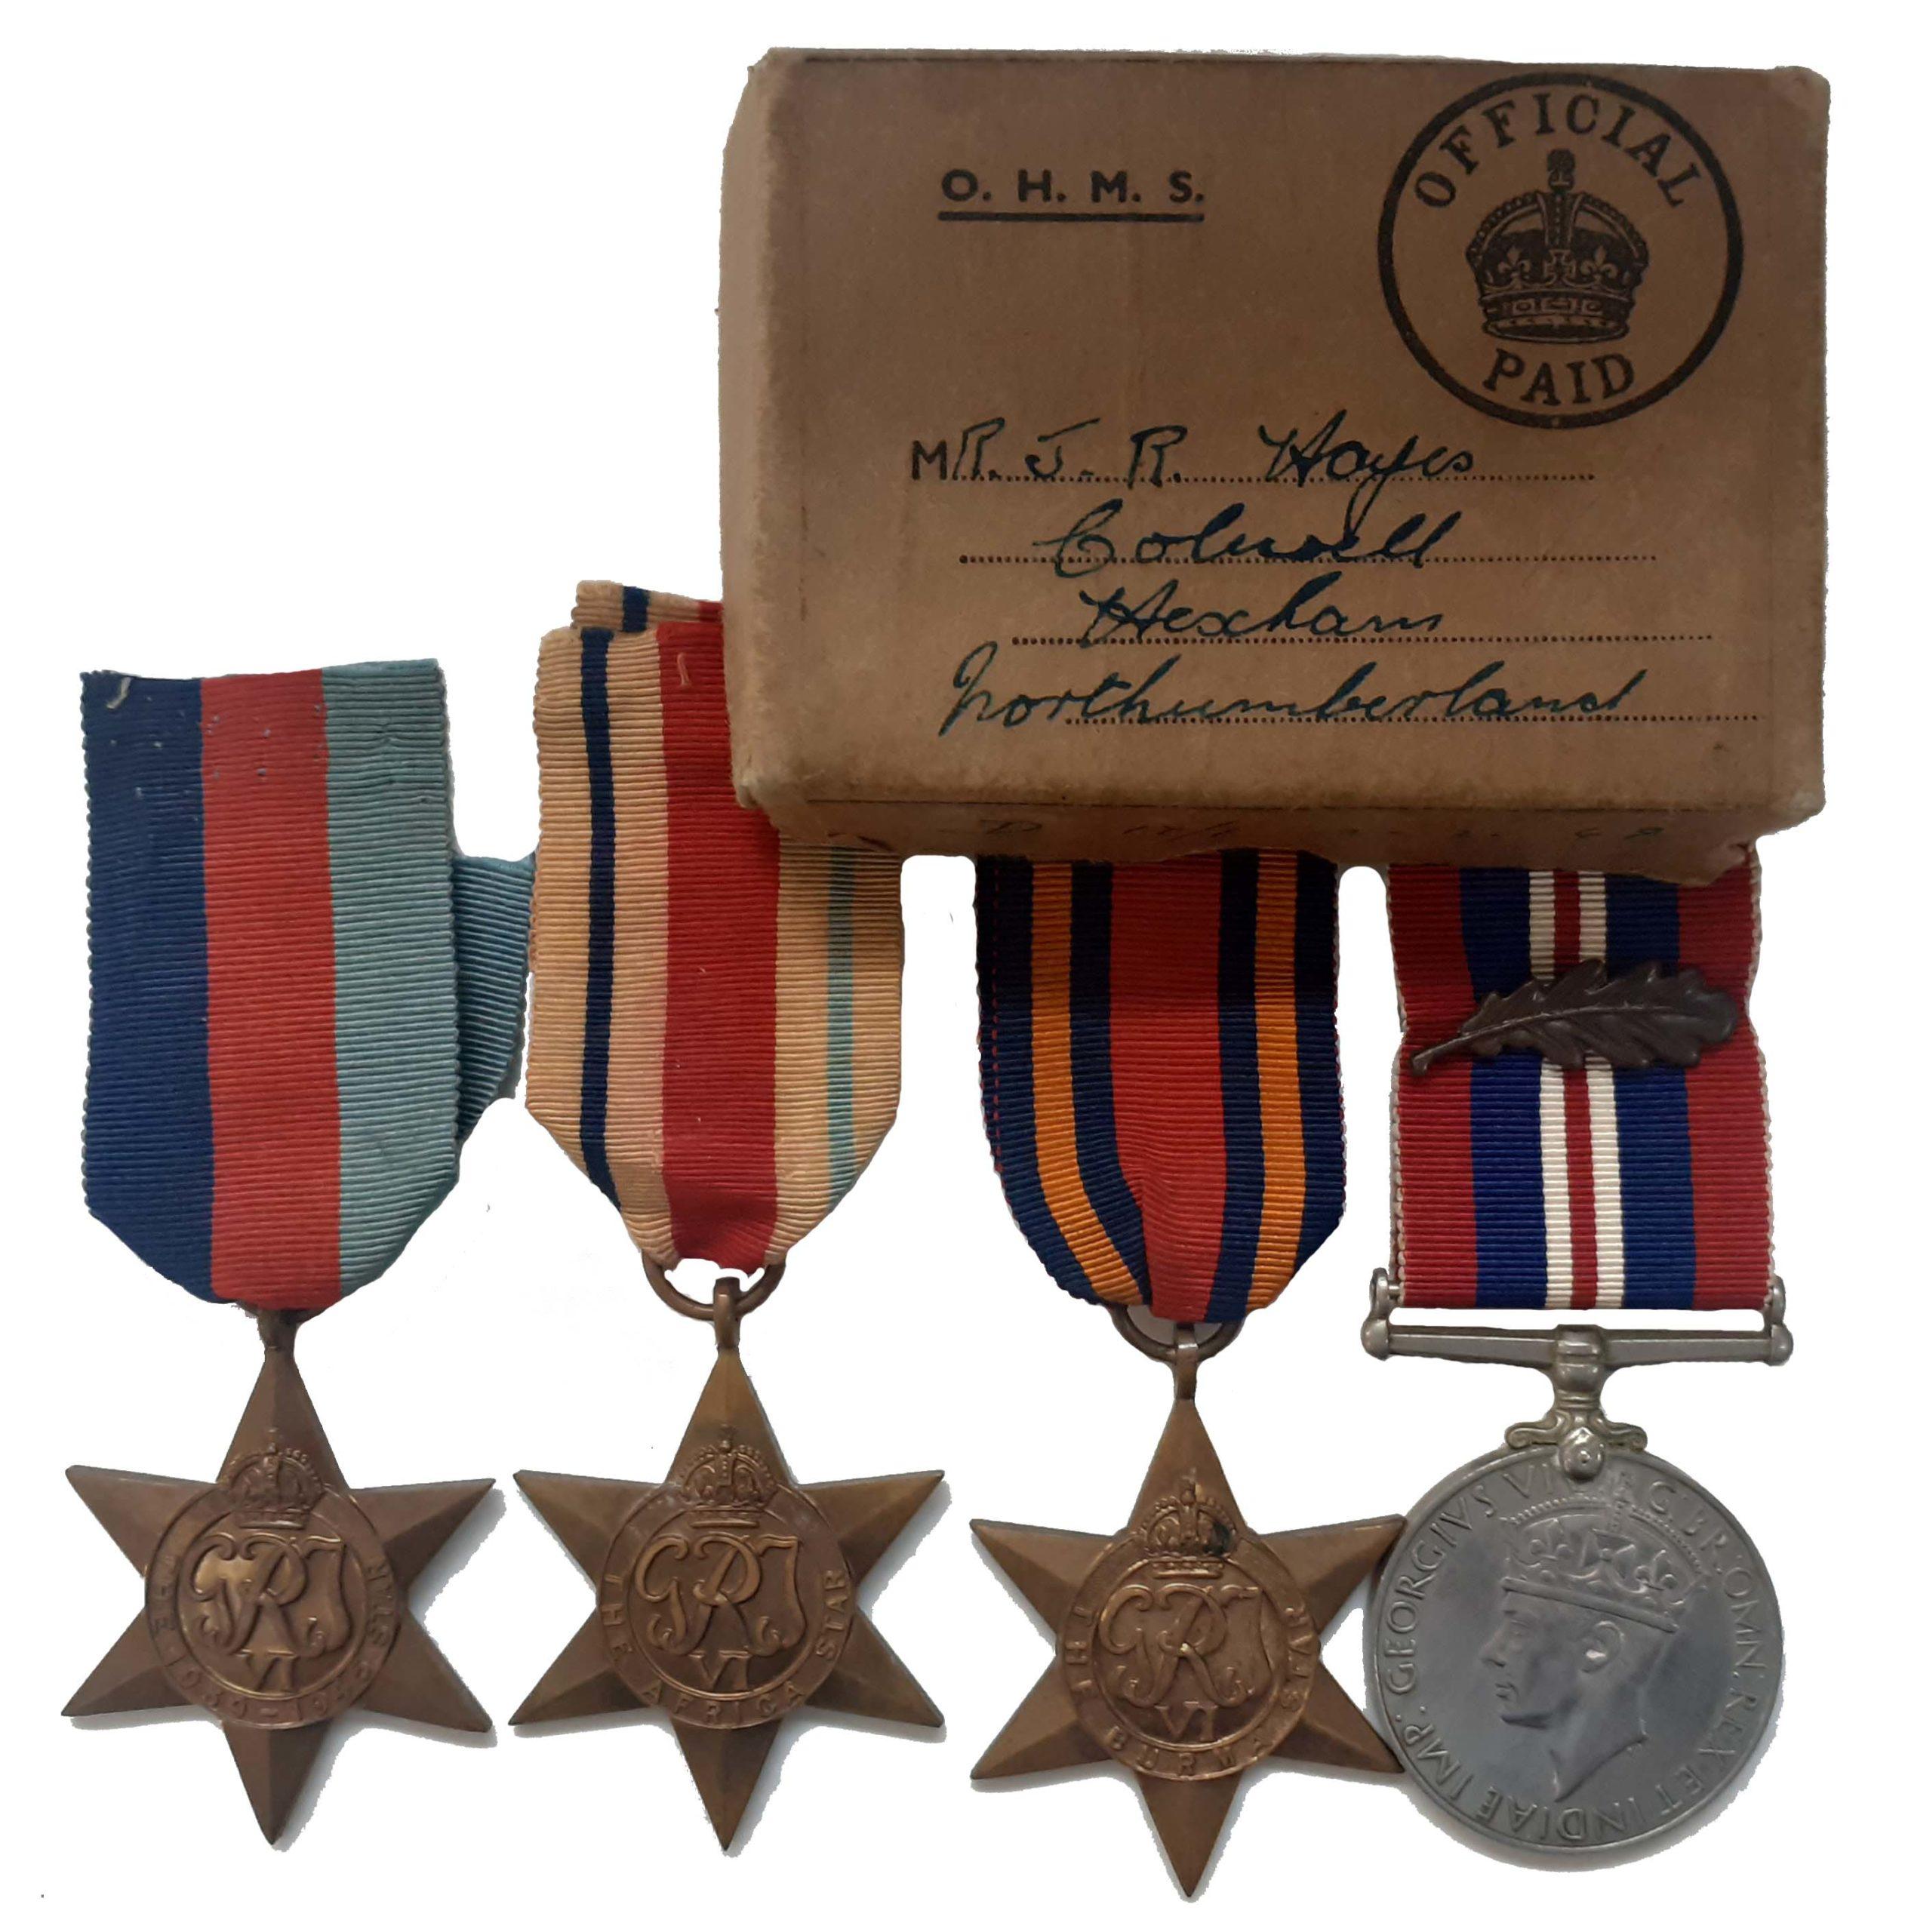 A North Africa, Far East, Mention in Dispatches Group of 4 attributed to 4451654 Sergeant J R Hayes